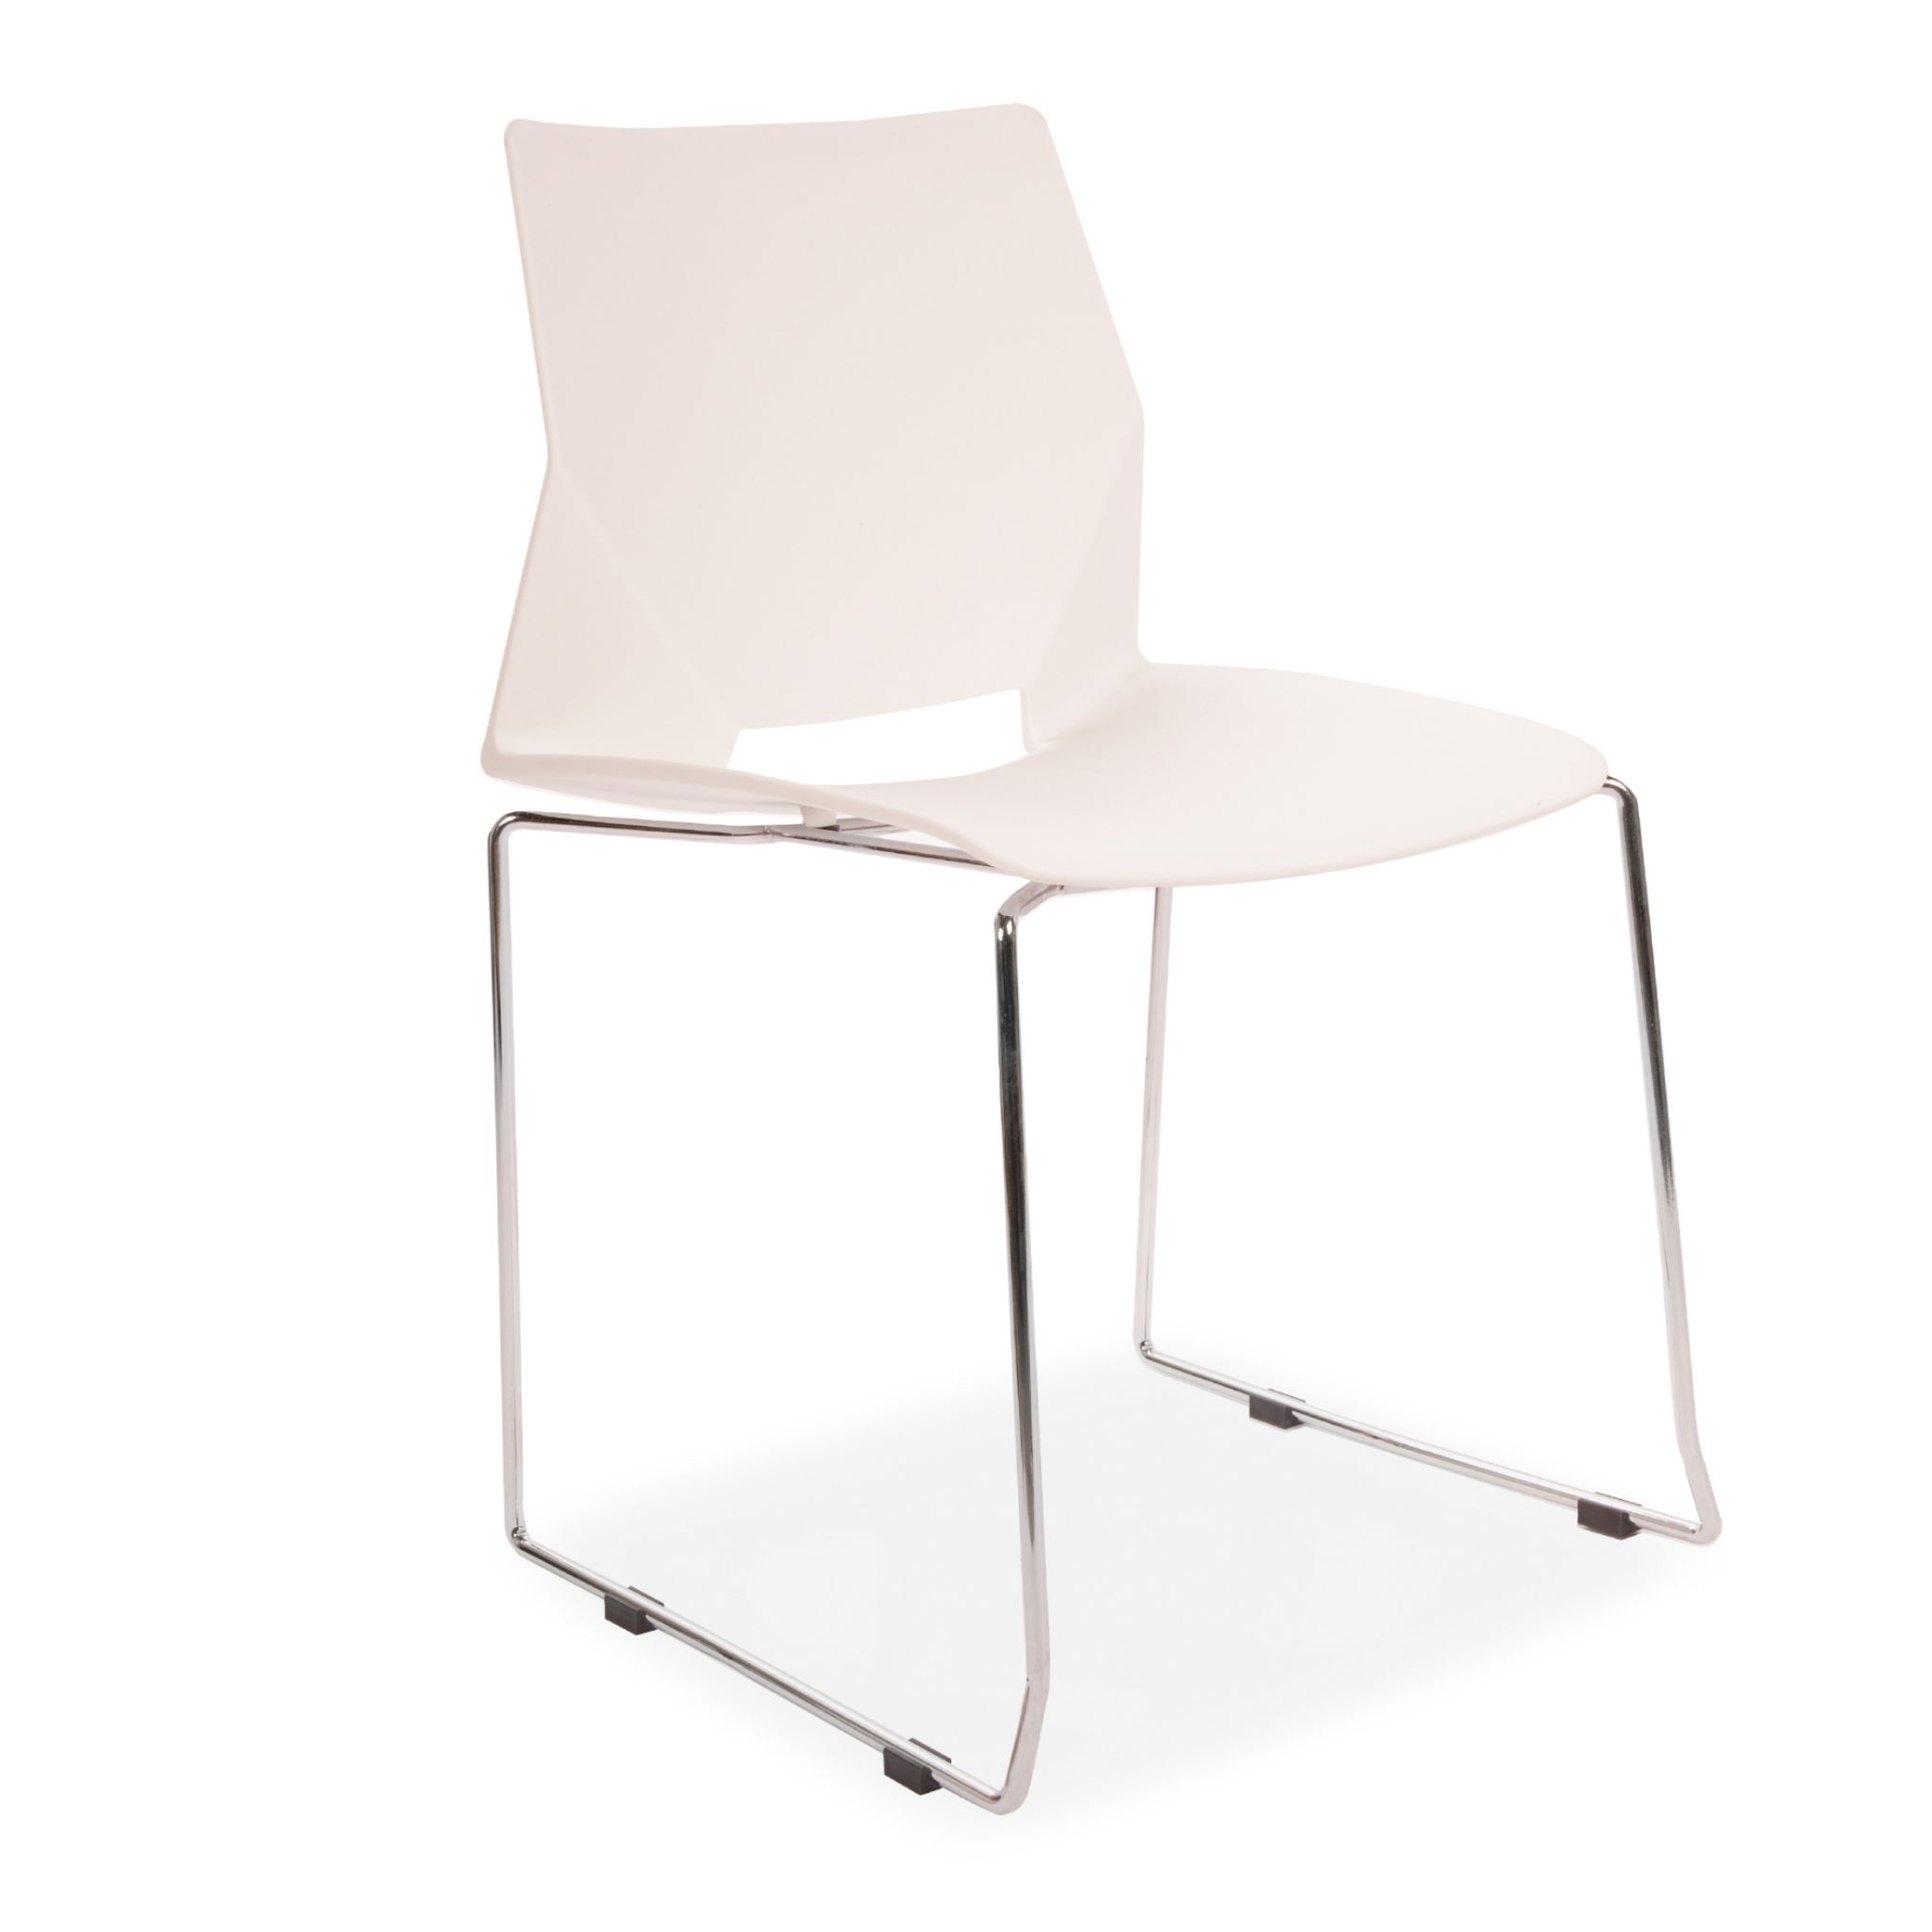 Awesome All Square Chair